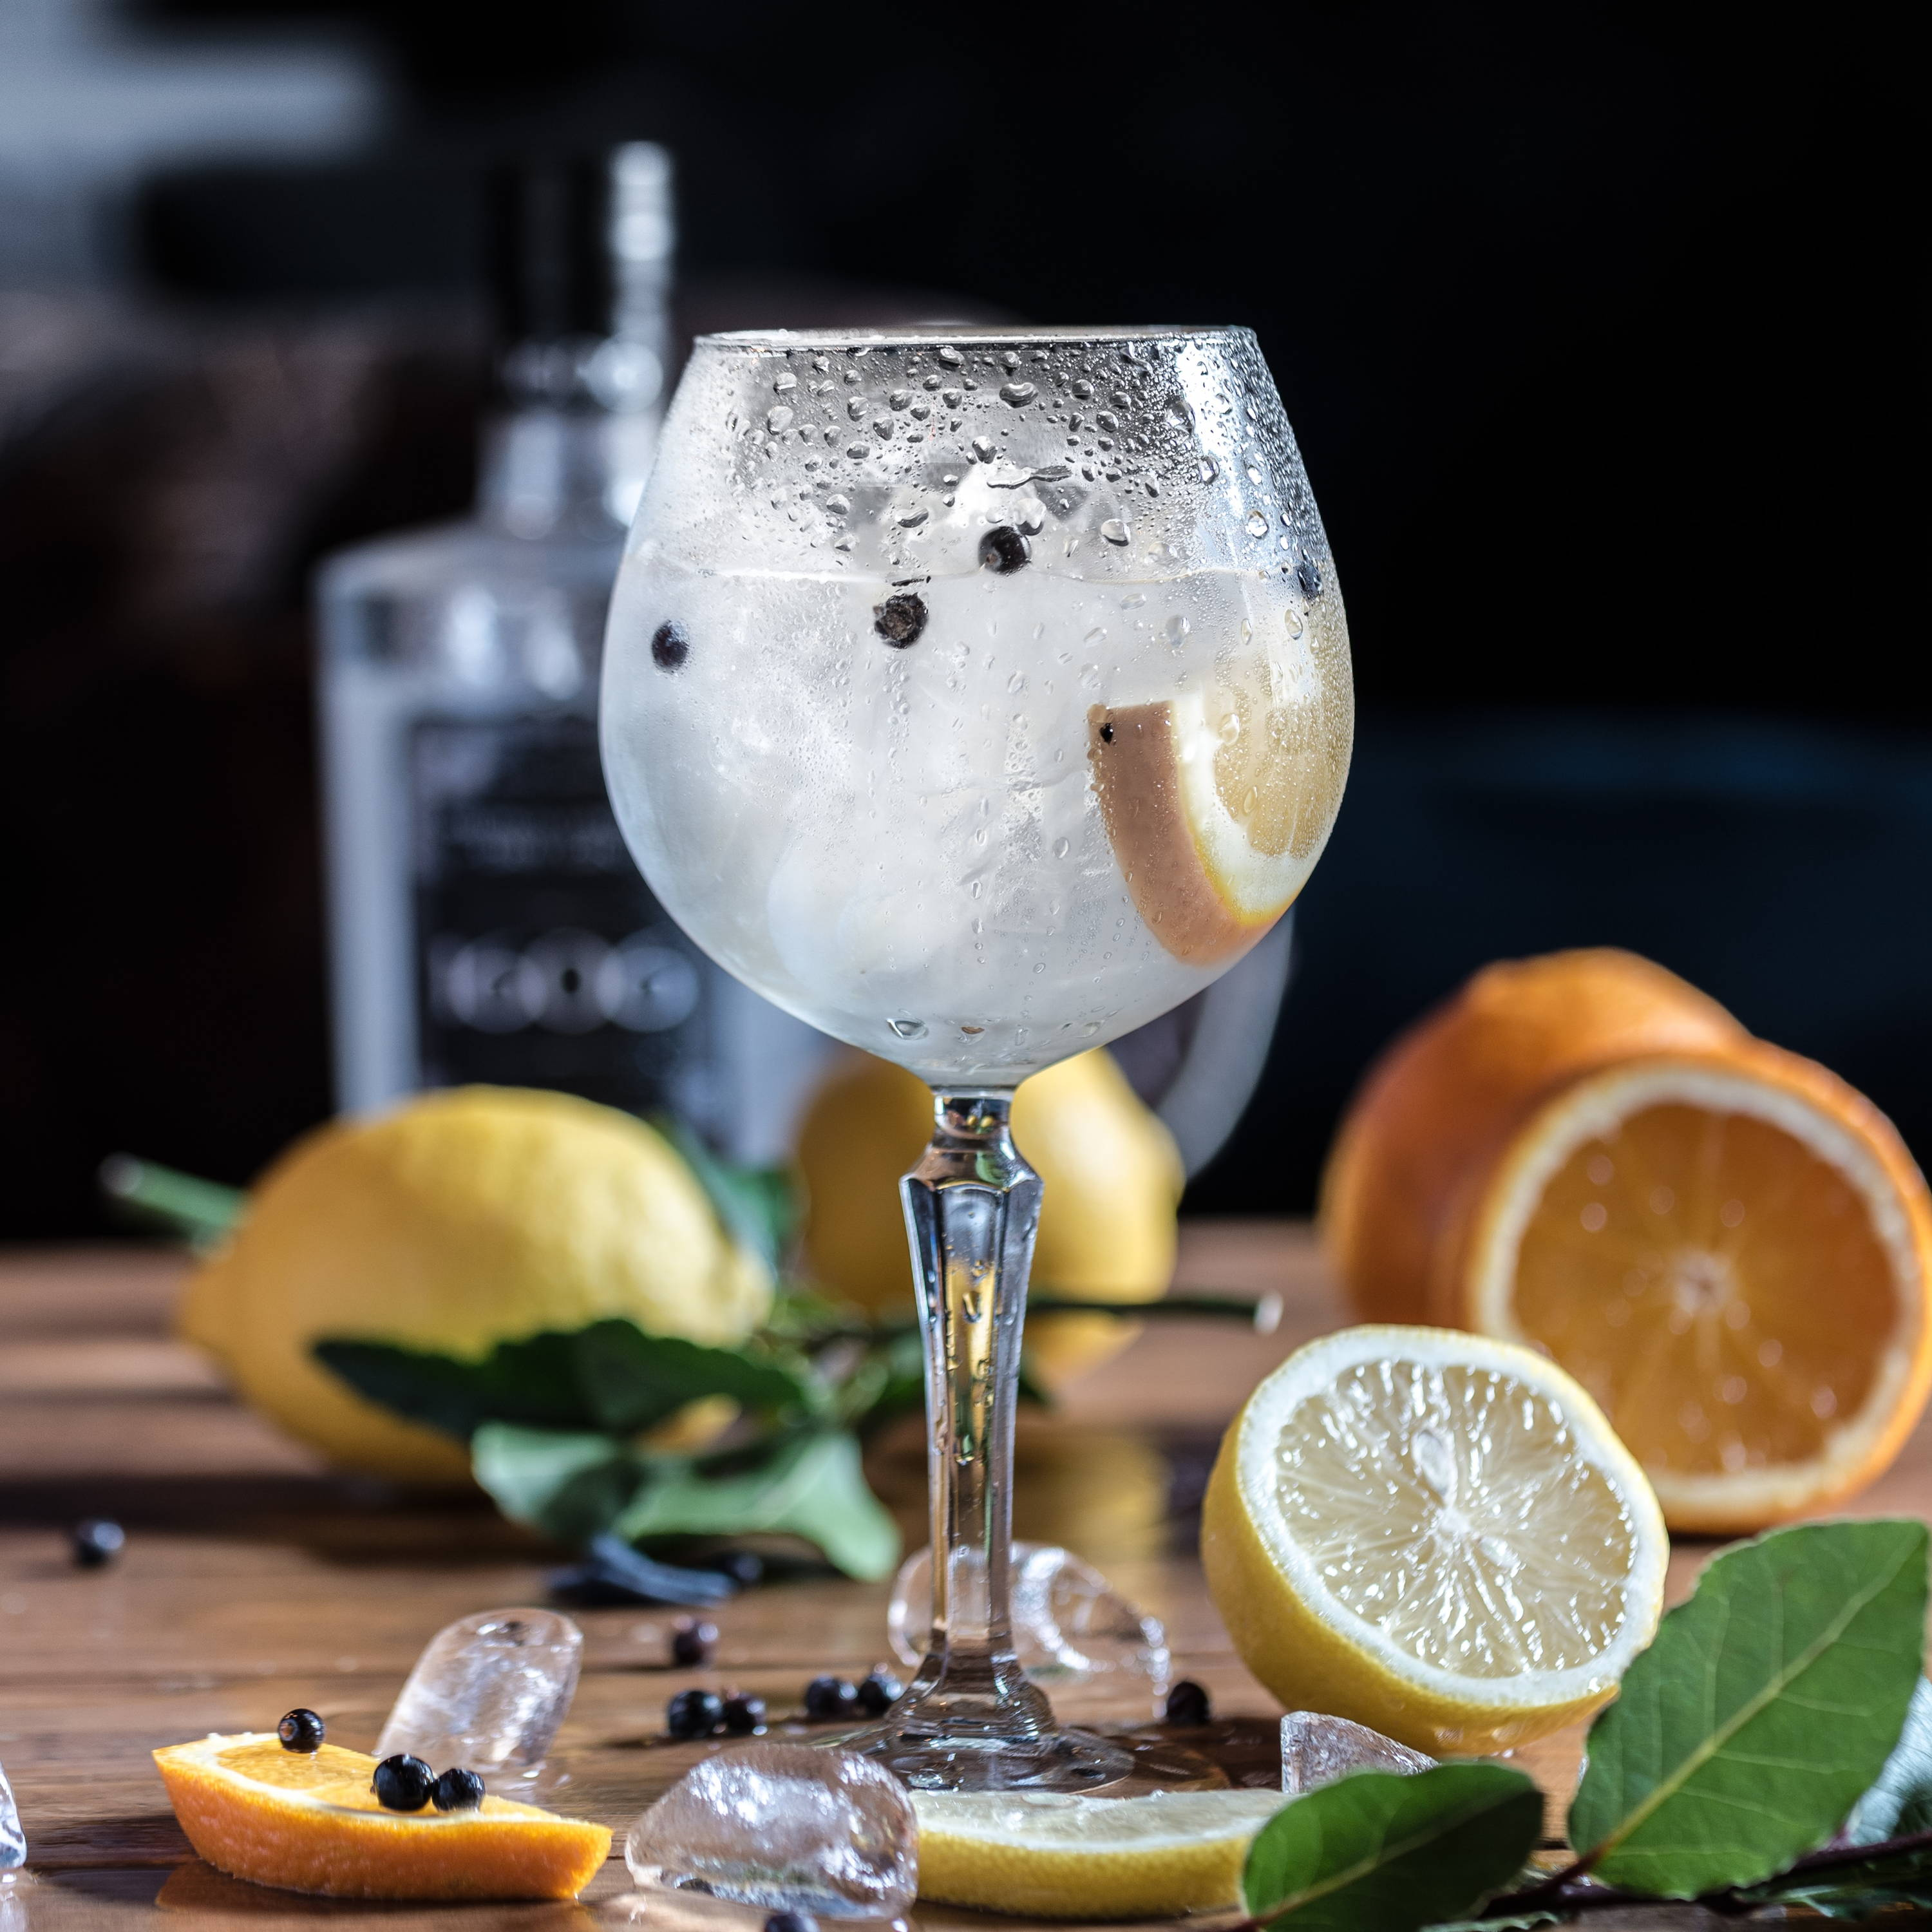 A gin & tonic in a wine glass with an orange slice and juniper berries, on a wooden table with cut citrus, leaves, and berries